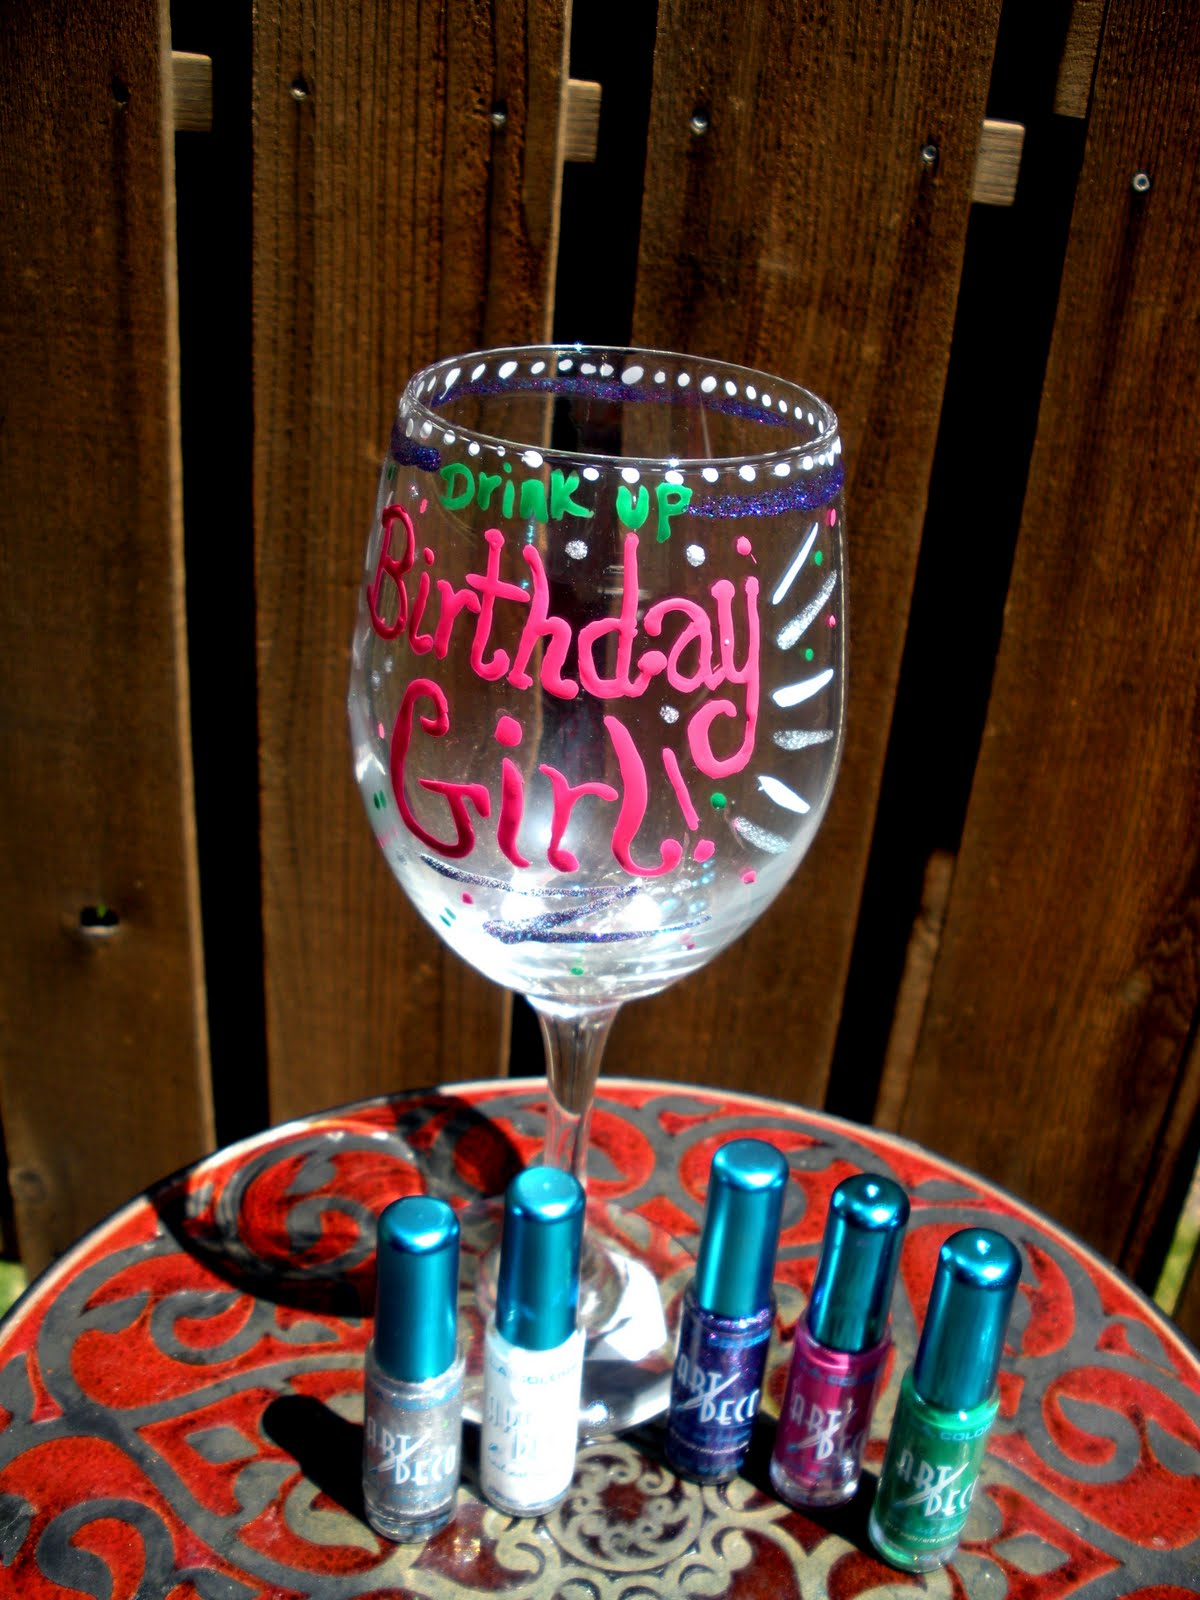 Pleasing Decorate A Wine Glass Using Nail Polish Largest Home Design Picture Inspirations Pitcheantrous